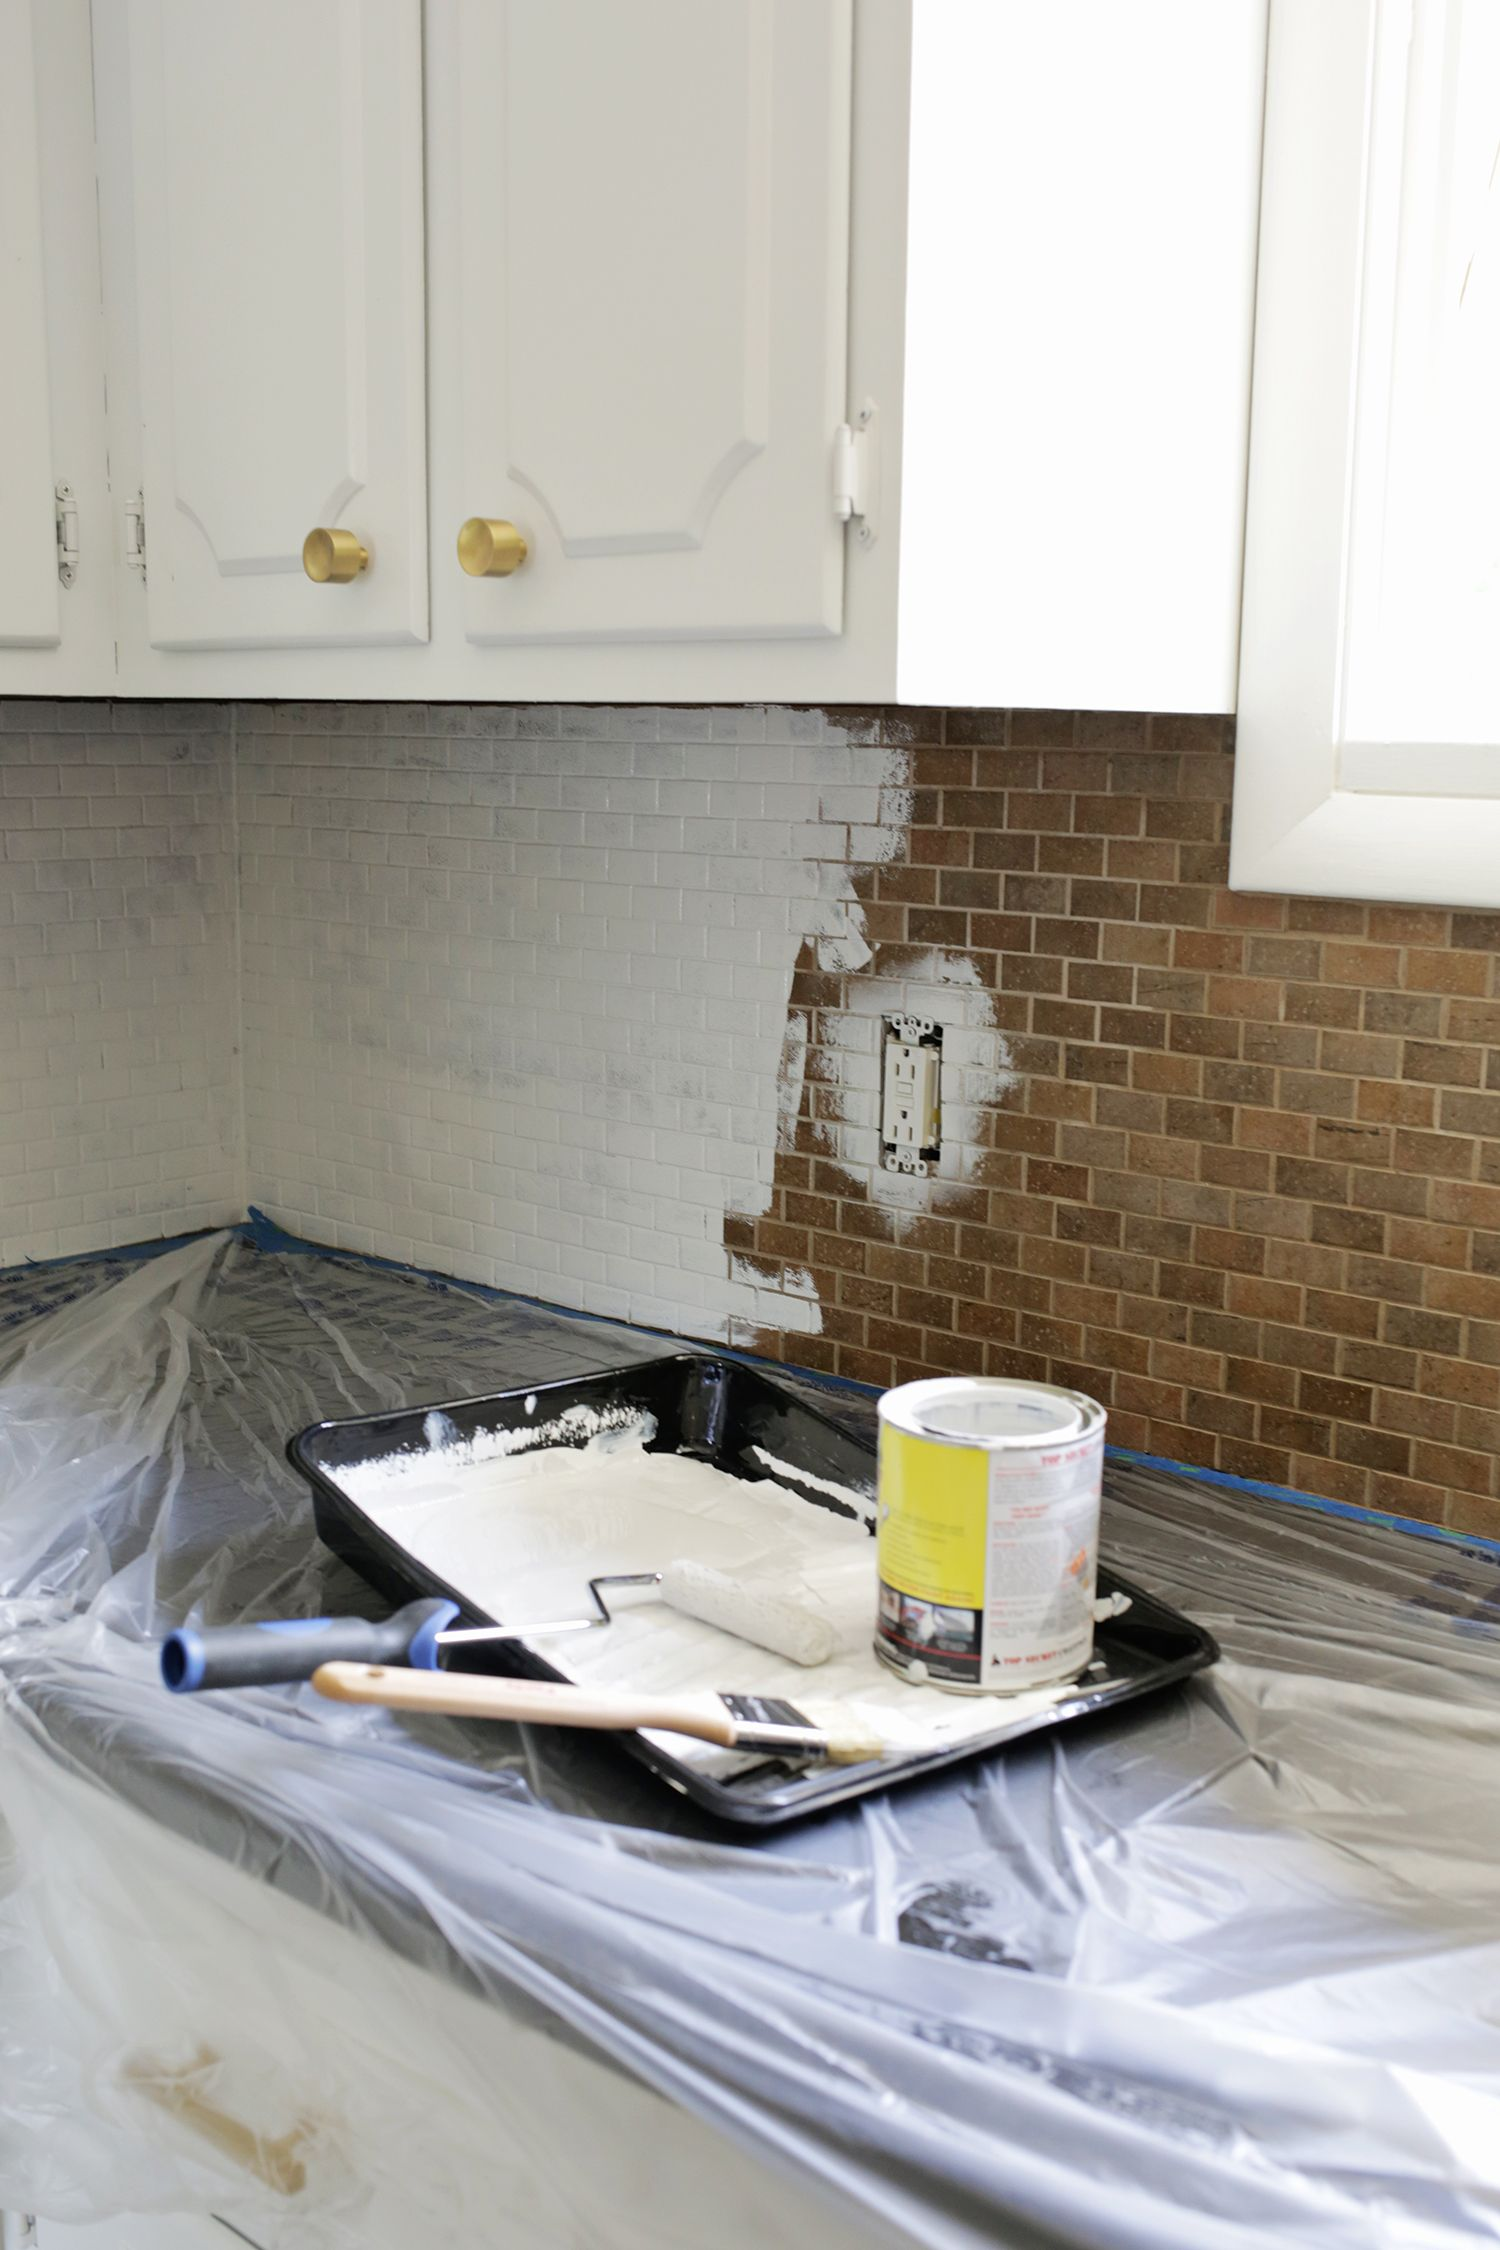 How To Paint A Tile Backsplash Painting Kitchen Tiles Kitchen Tiles Design Painting Over Tiles